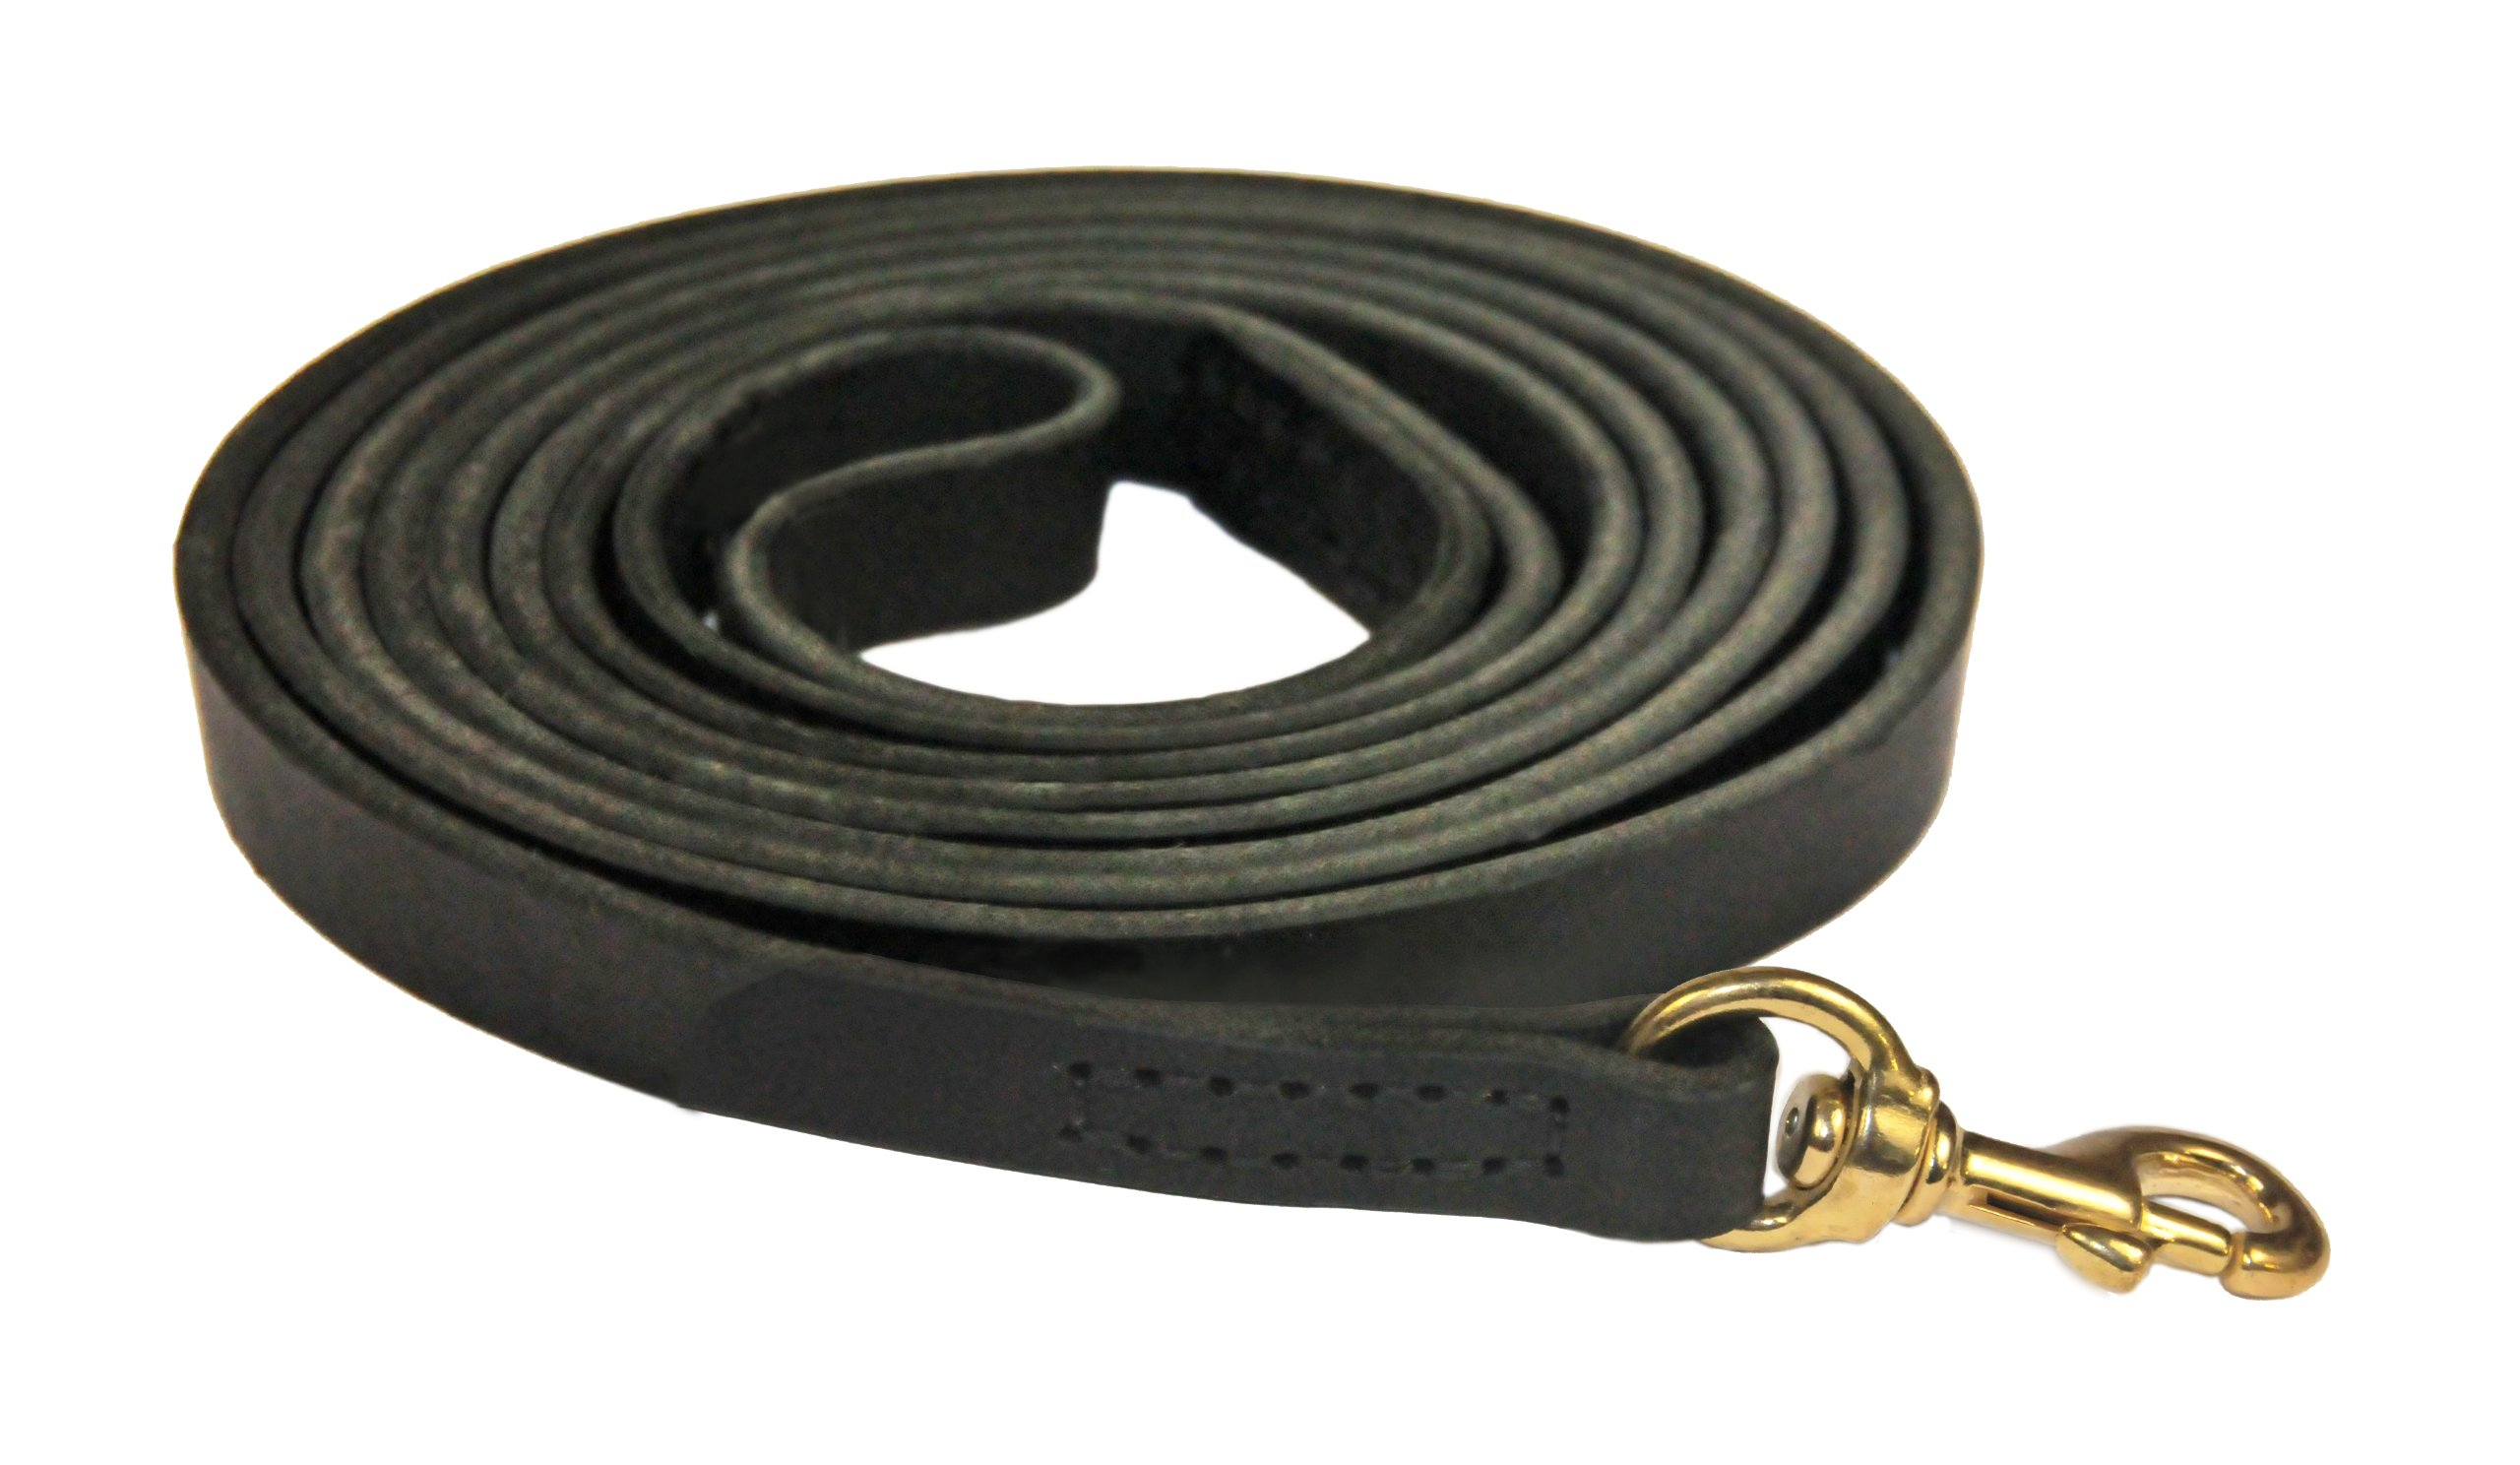 Dean and Tyler Stitched Track Dog Leash, Black 20-Feet by 1/2-Inch Width With Solid Brass Hardware.